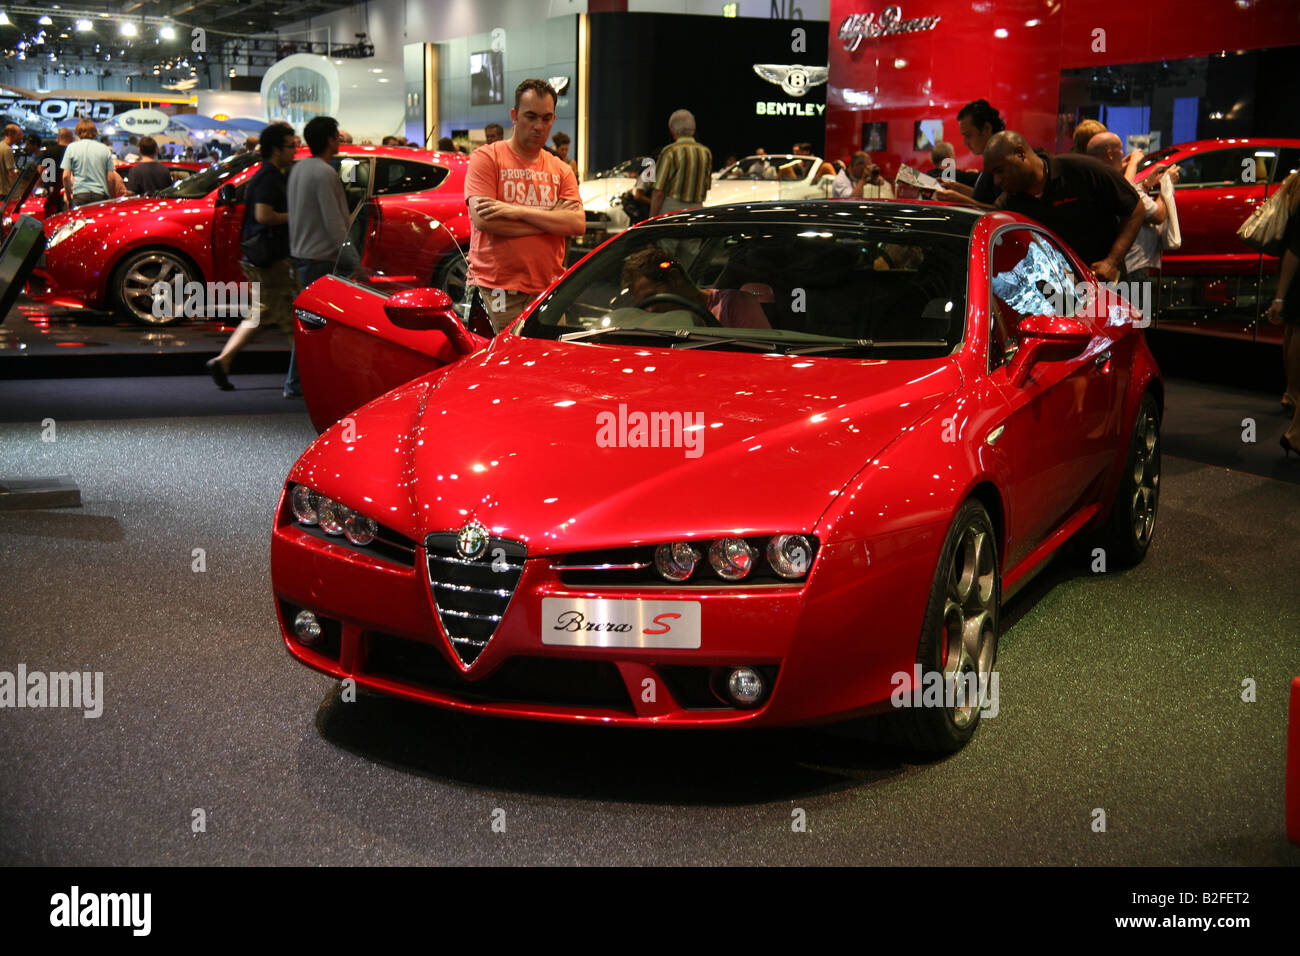 Alfa Romeo Brera S Prodrive At The British Motor Show Stock Photo Alamy